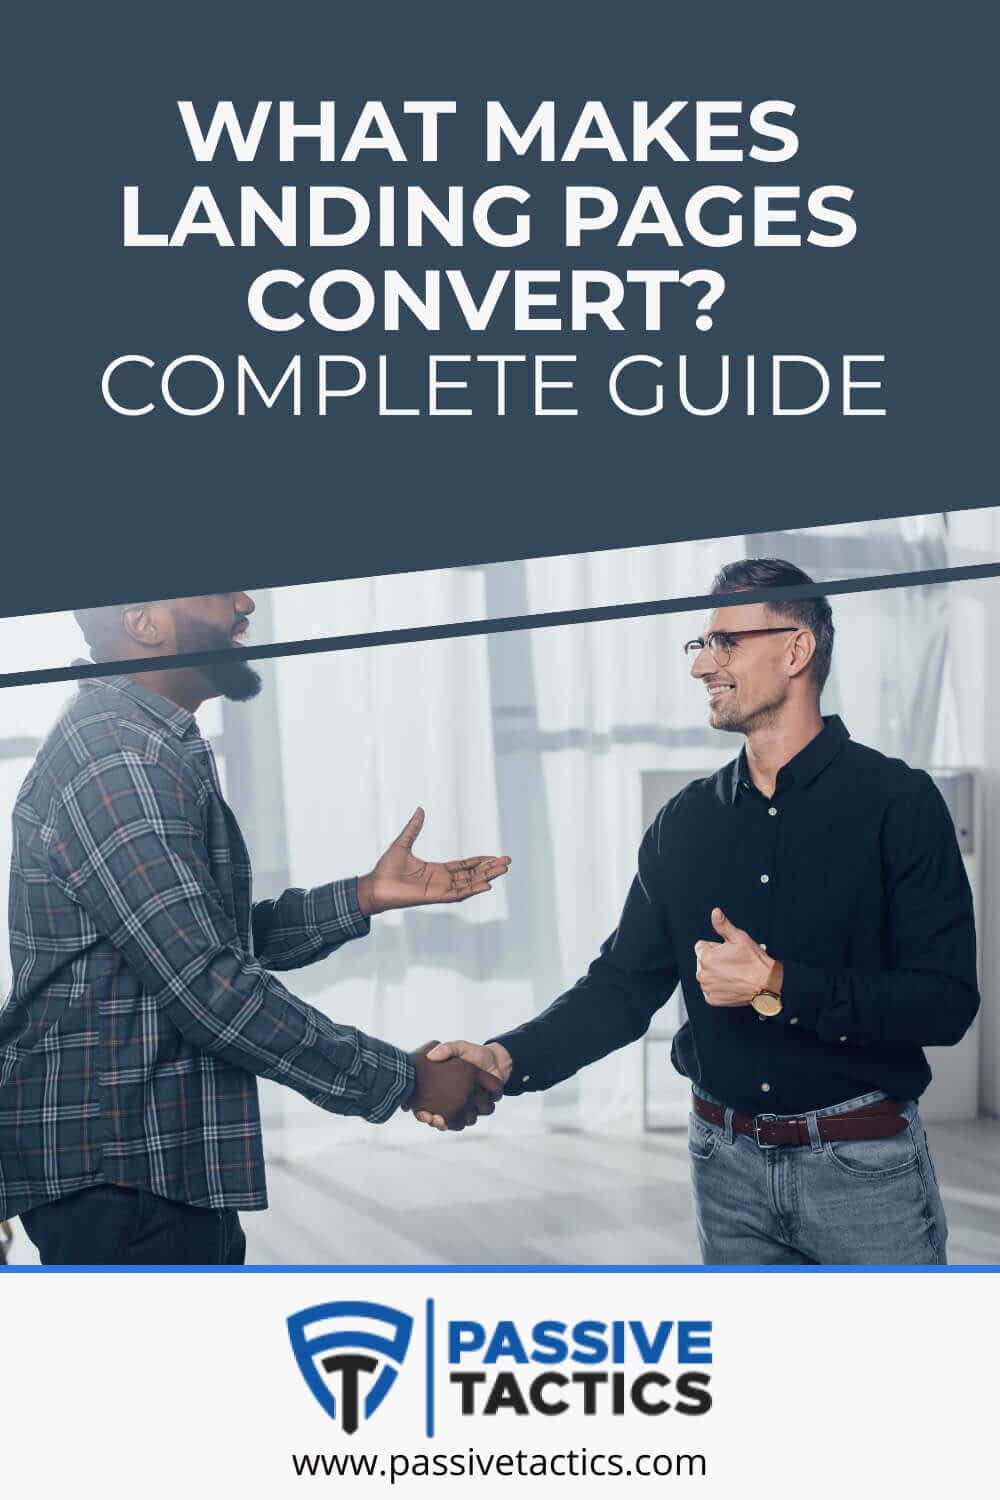 What Makes Landing Pages Convert? Complete Guide